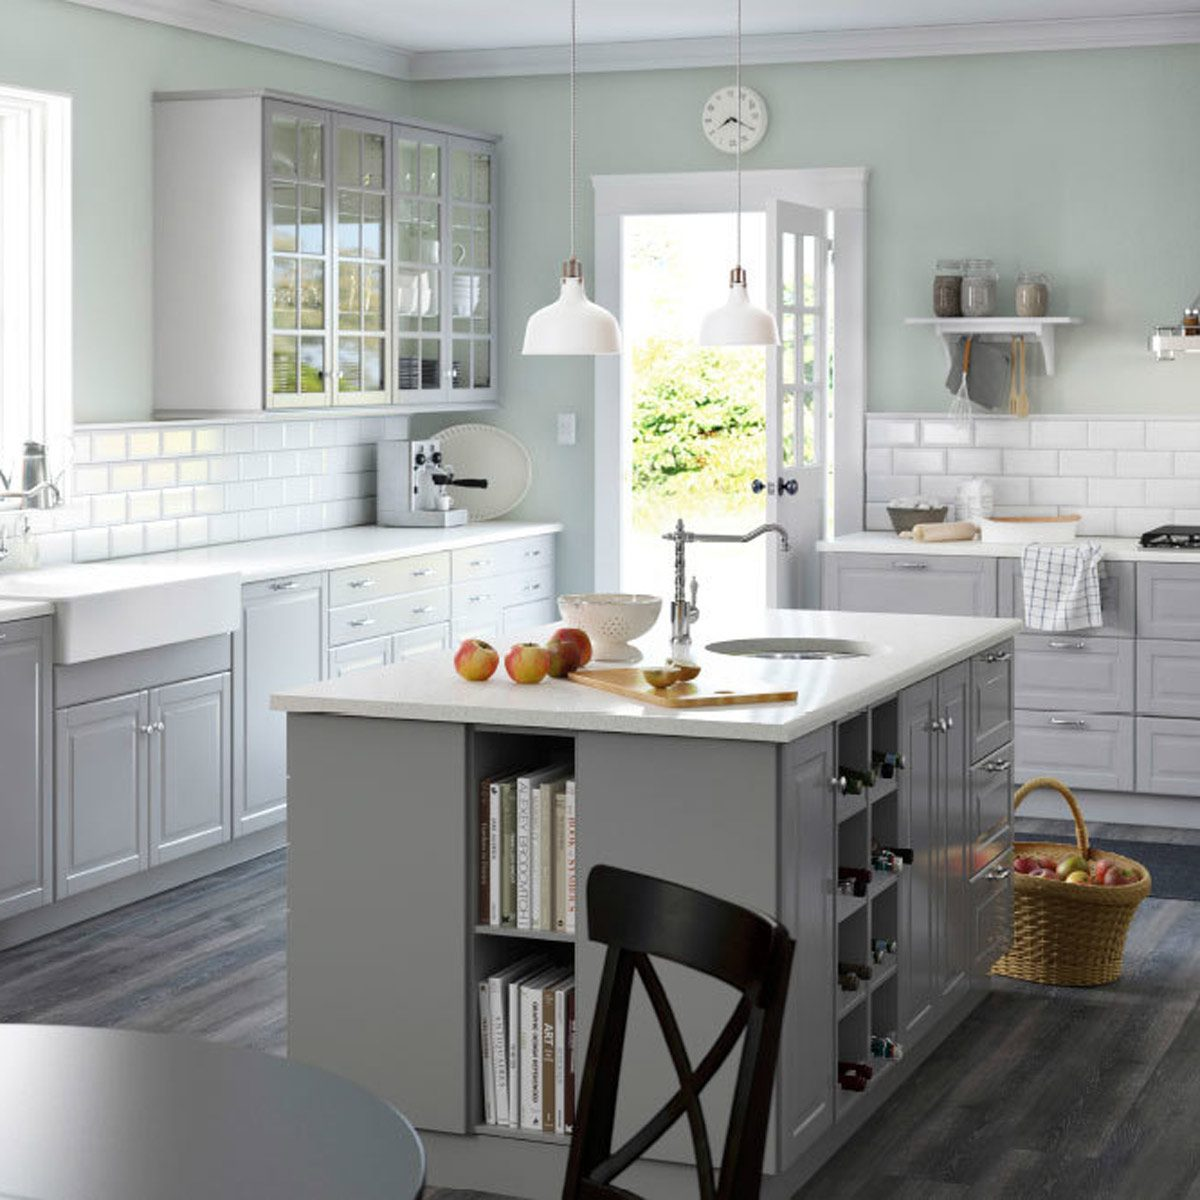 60 Best Kitchen Color Samples Images On Pinterest: 12 Inspiring Kitchen Island Ideas